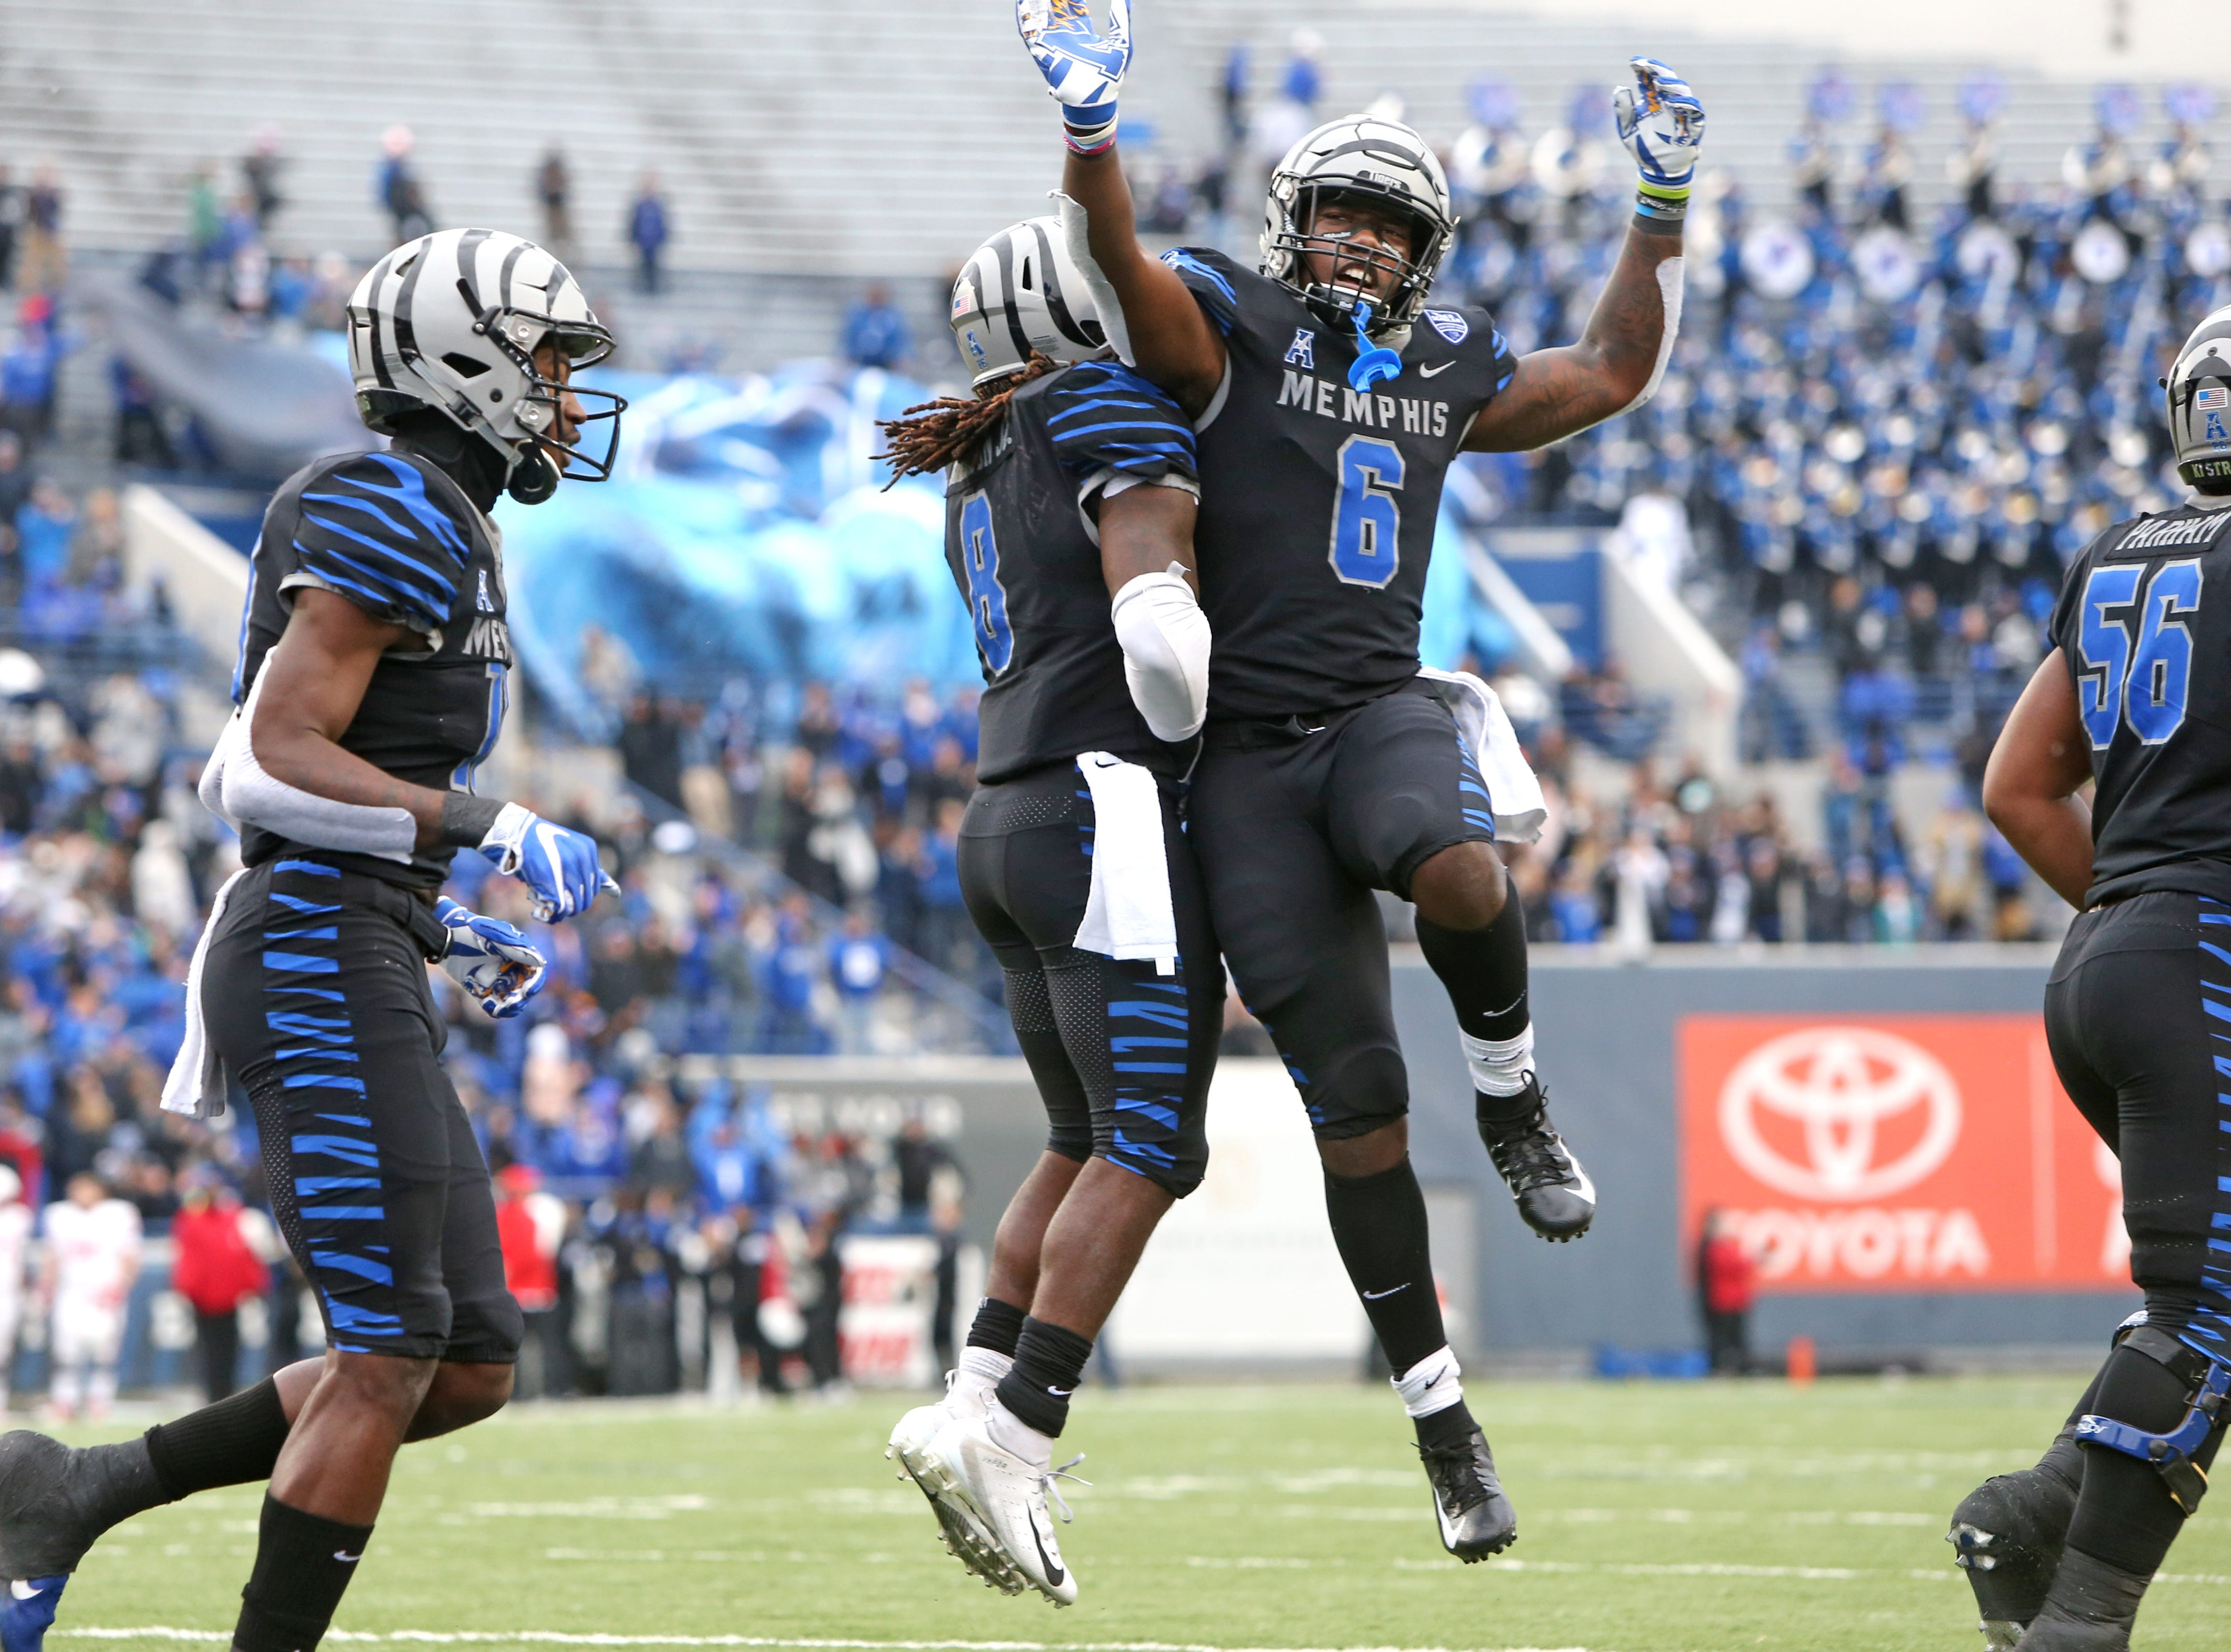 Memphis players Darrell Henderson (8) and Patrick Taylor Jr. (6) celebrate Henderson's touchdown against the Houston Cougars as they win the AAC West title 52-31 at the Liberty Bowl on Friday, Nov. 23, 2018.